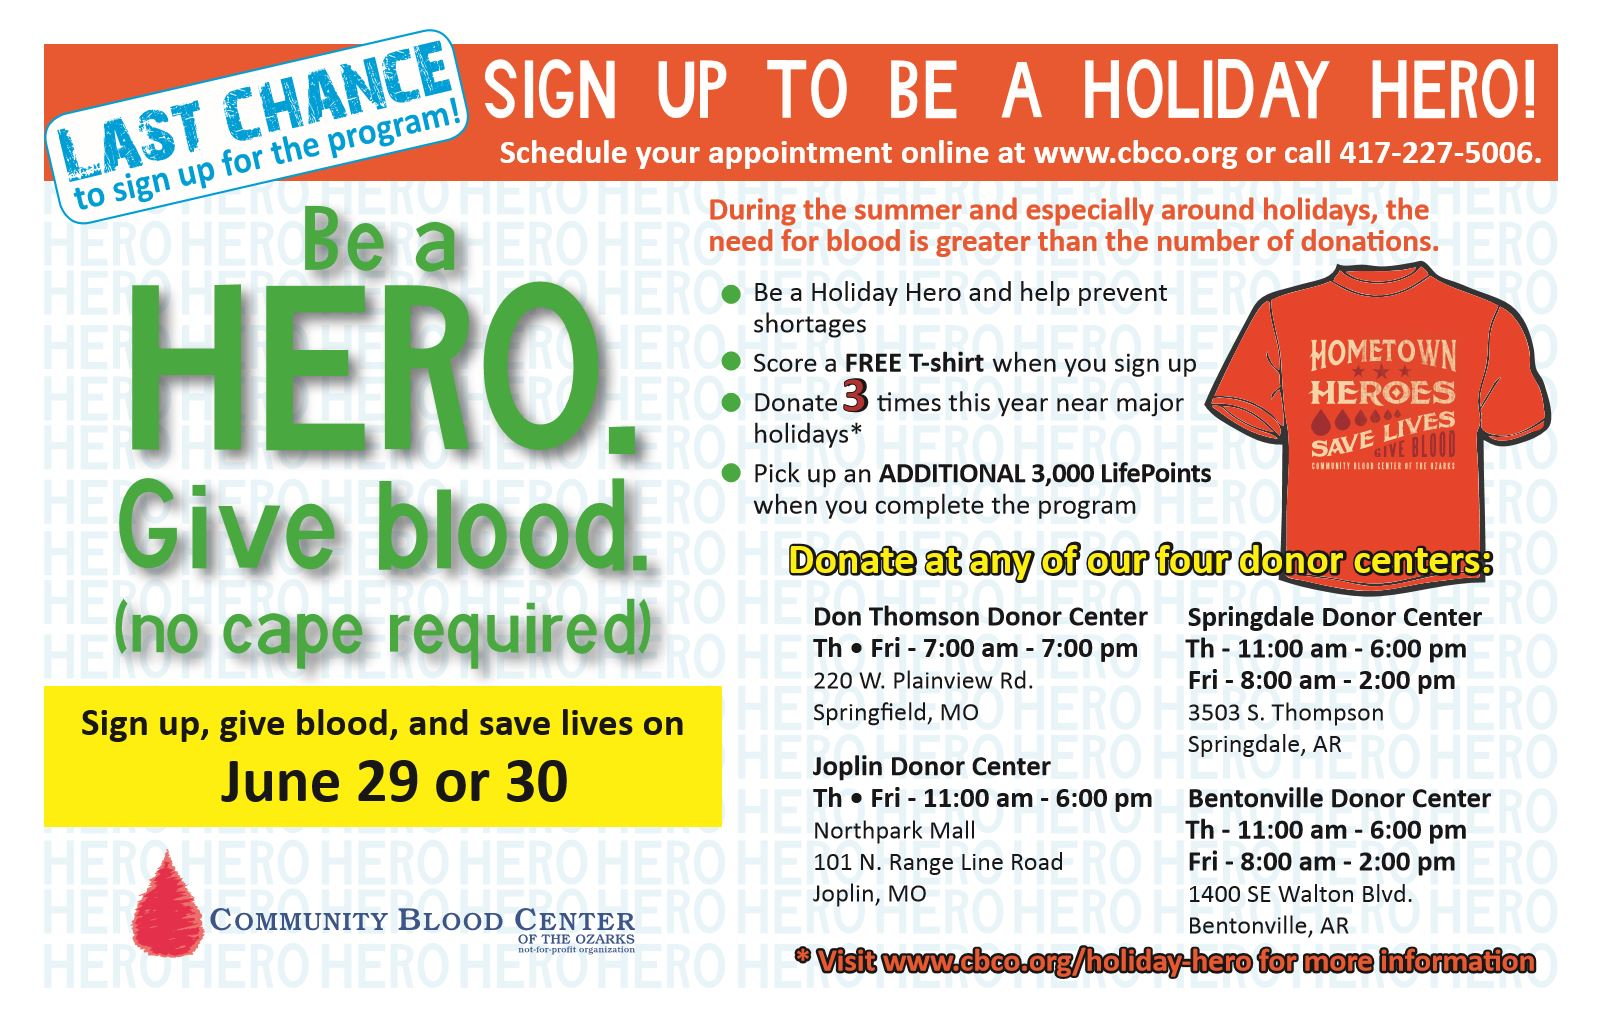 Holiday Hero CBCO Blood Drive 2017